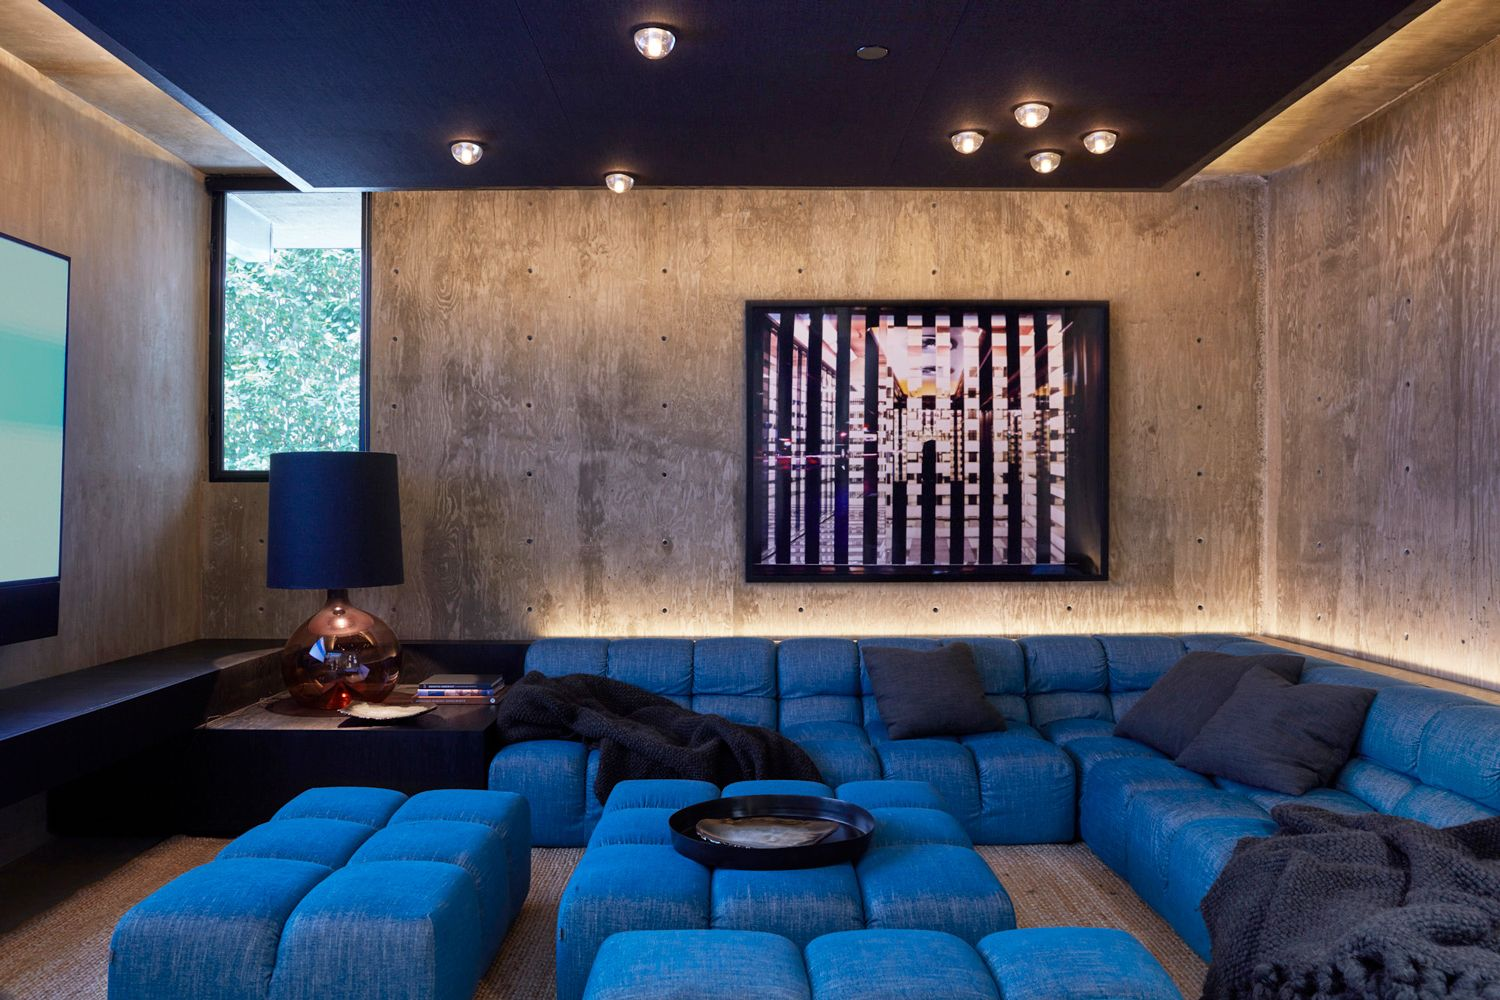 12 Home Theater Design Ideas Renovation Tips And Decor Examples